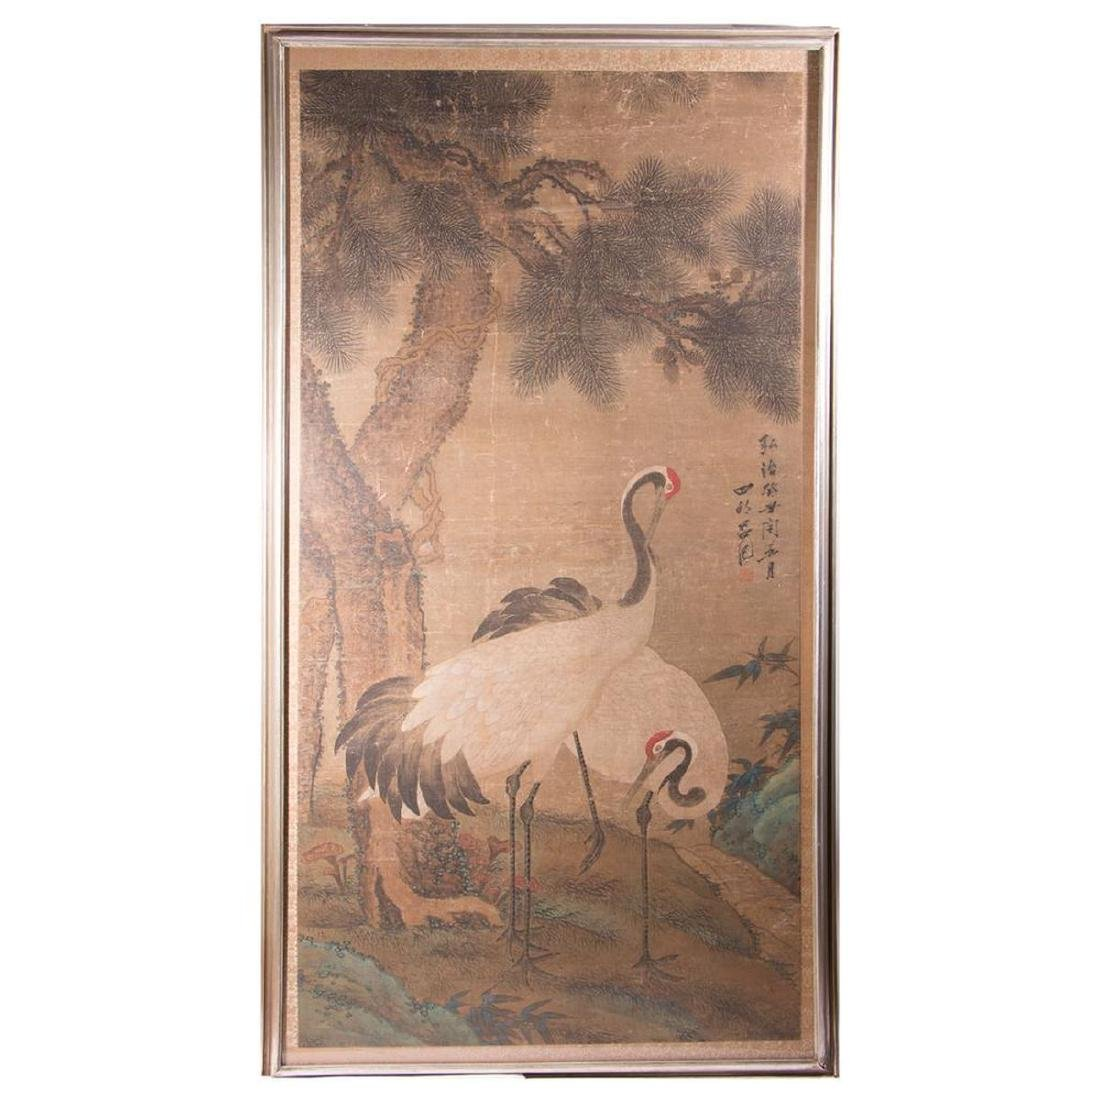 An 18th / 19th century Chinese painting of cranes.